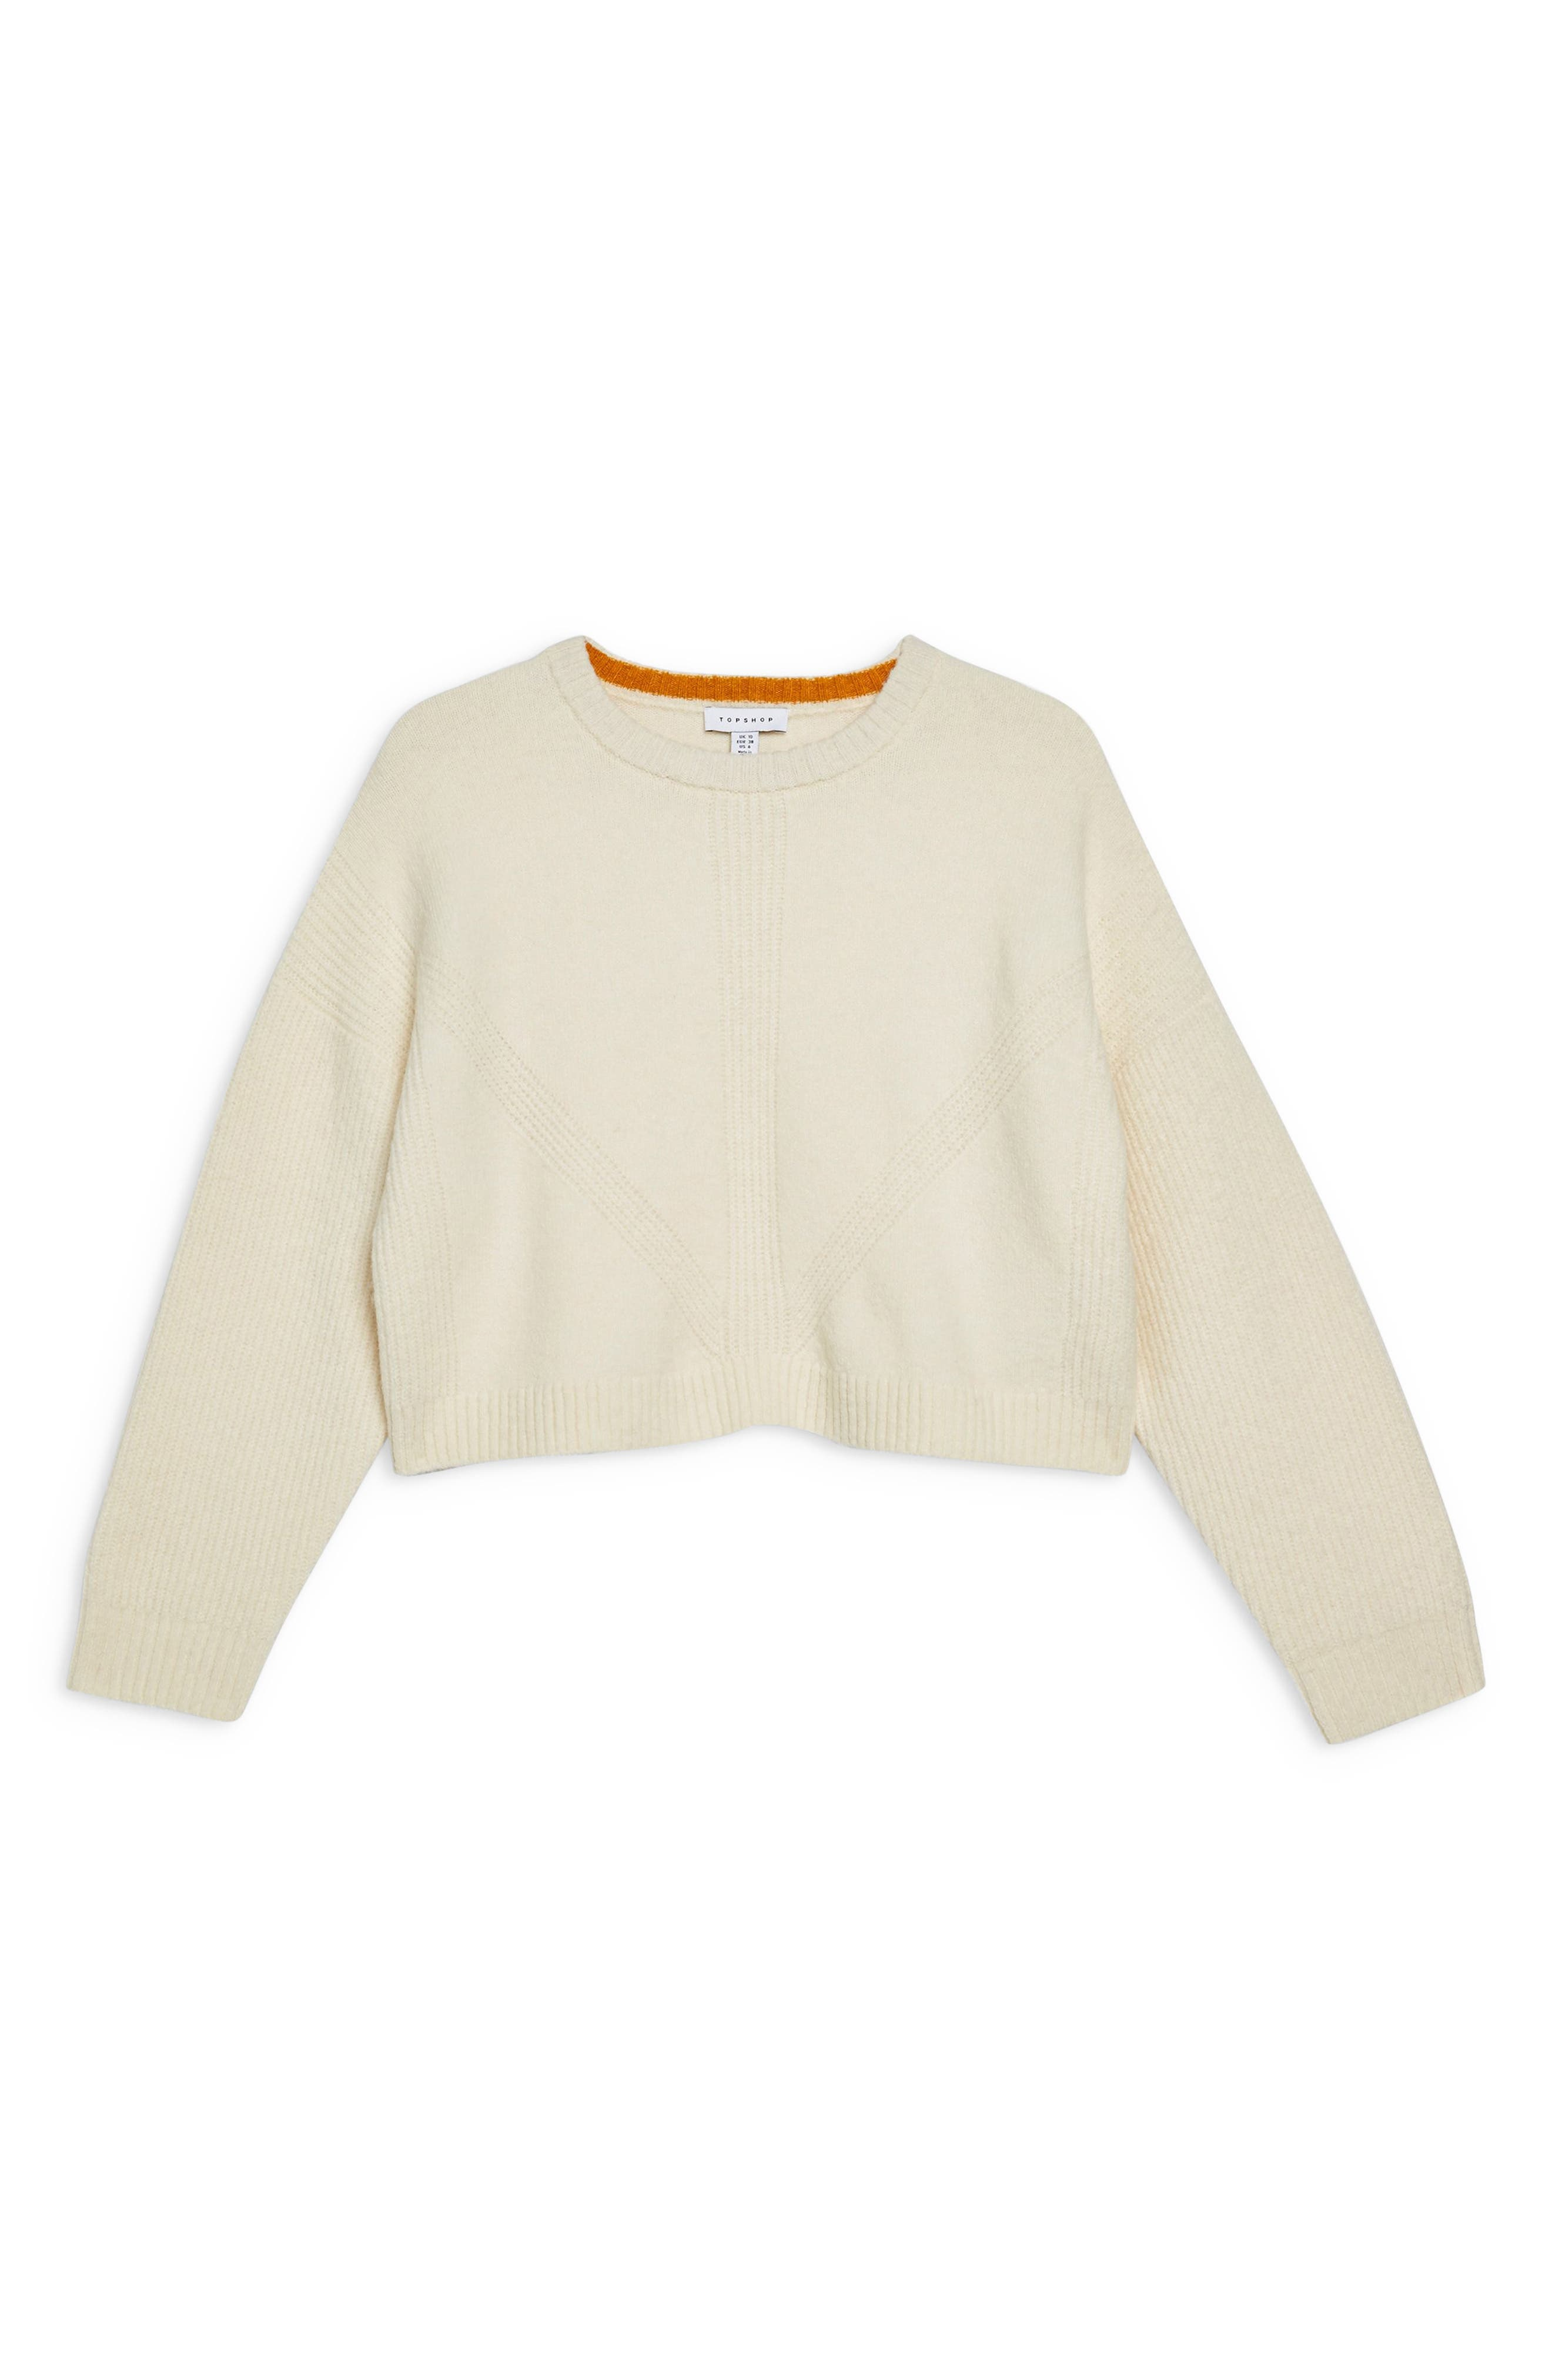 TOPSHOP, Stretch Chevron Ribbed Sweater, Alternate thumbnail 3, color, 900